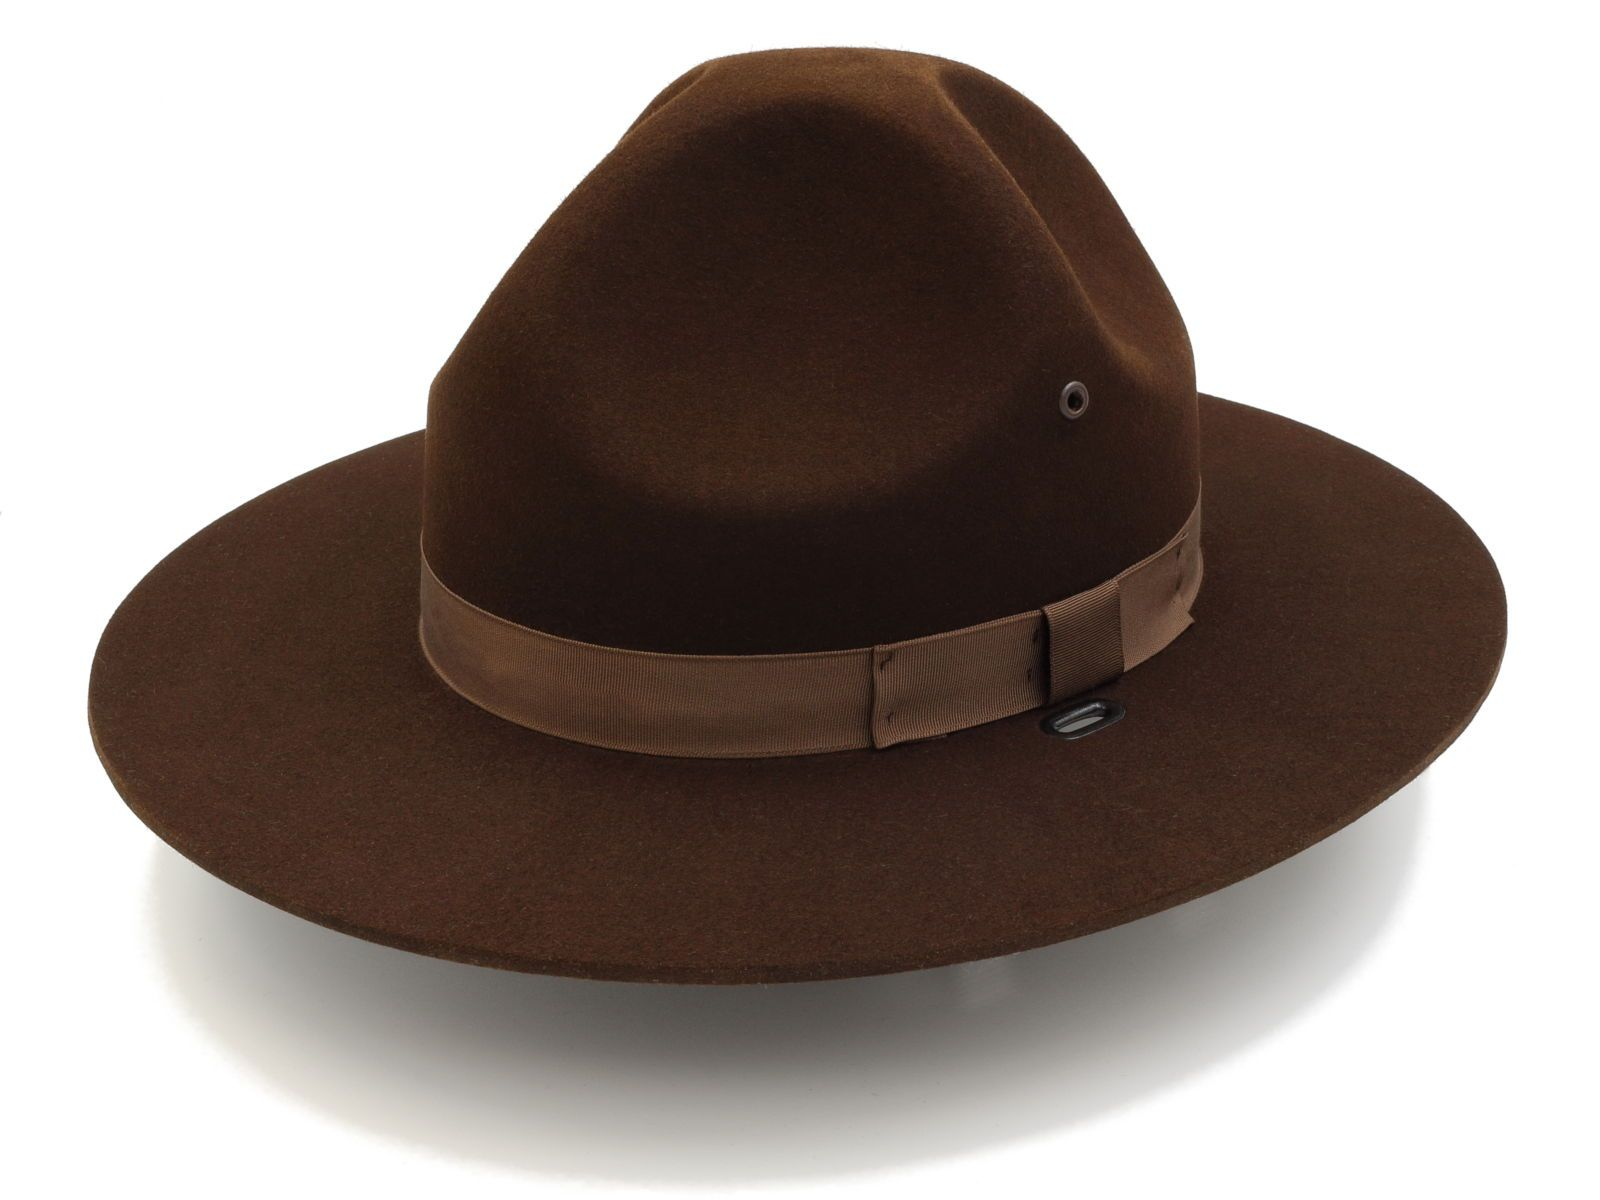 Stratton Hats F40 Campaign Hat in Oklahoma Brown